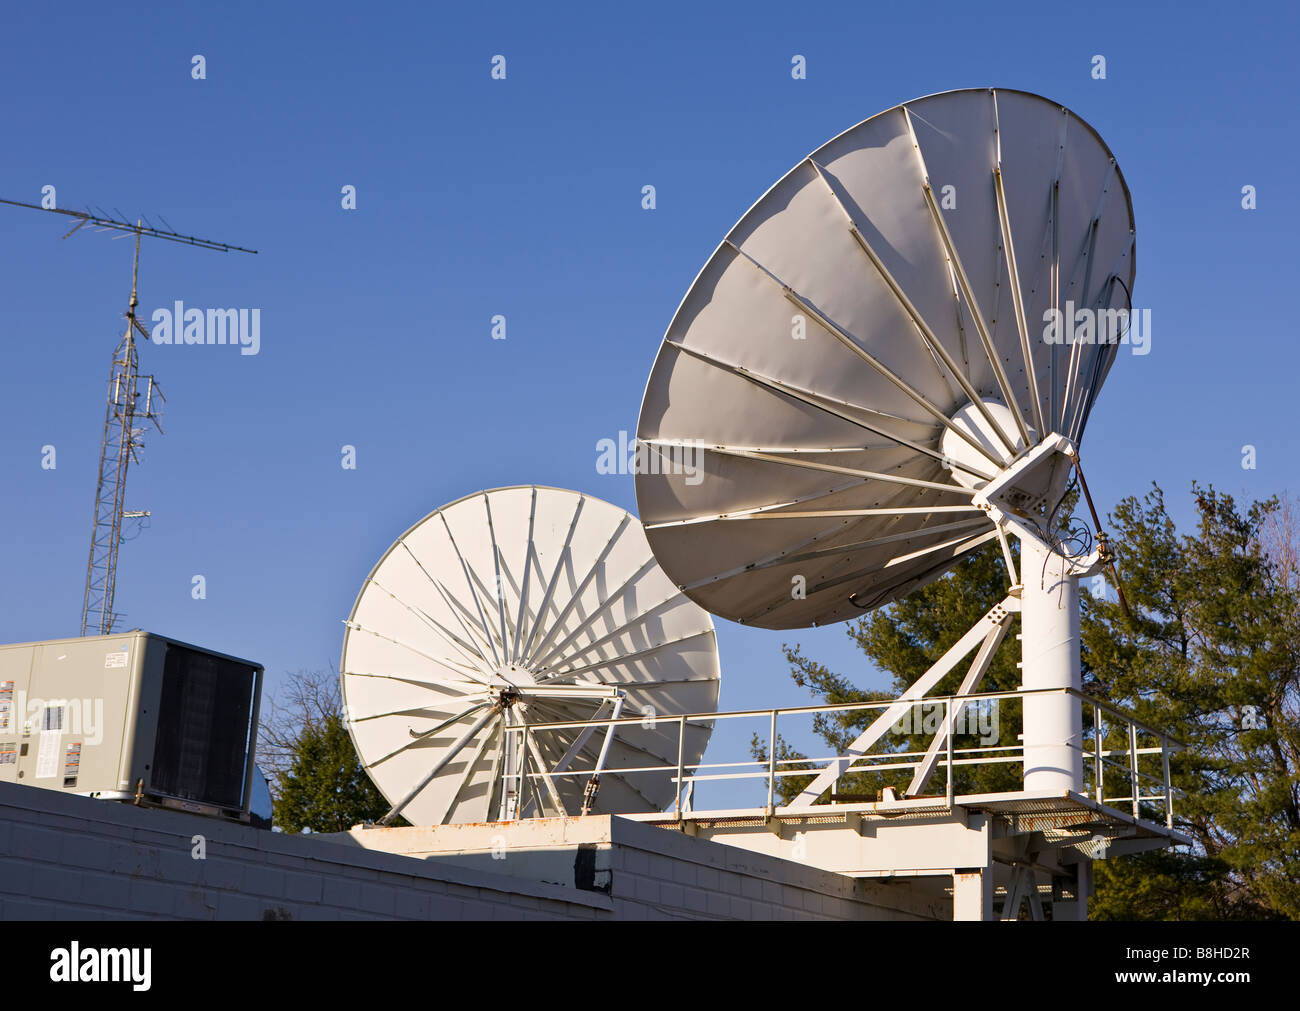 ARLINGTON VIRGINIA USA Satellite dish for cable TV on roof Stock Photo